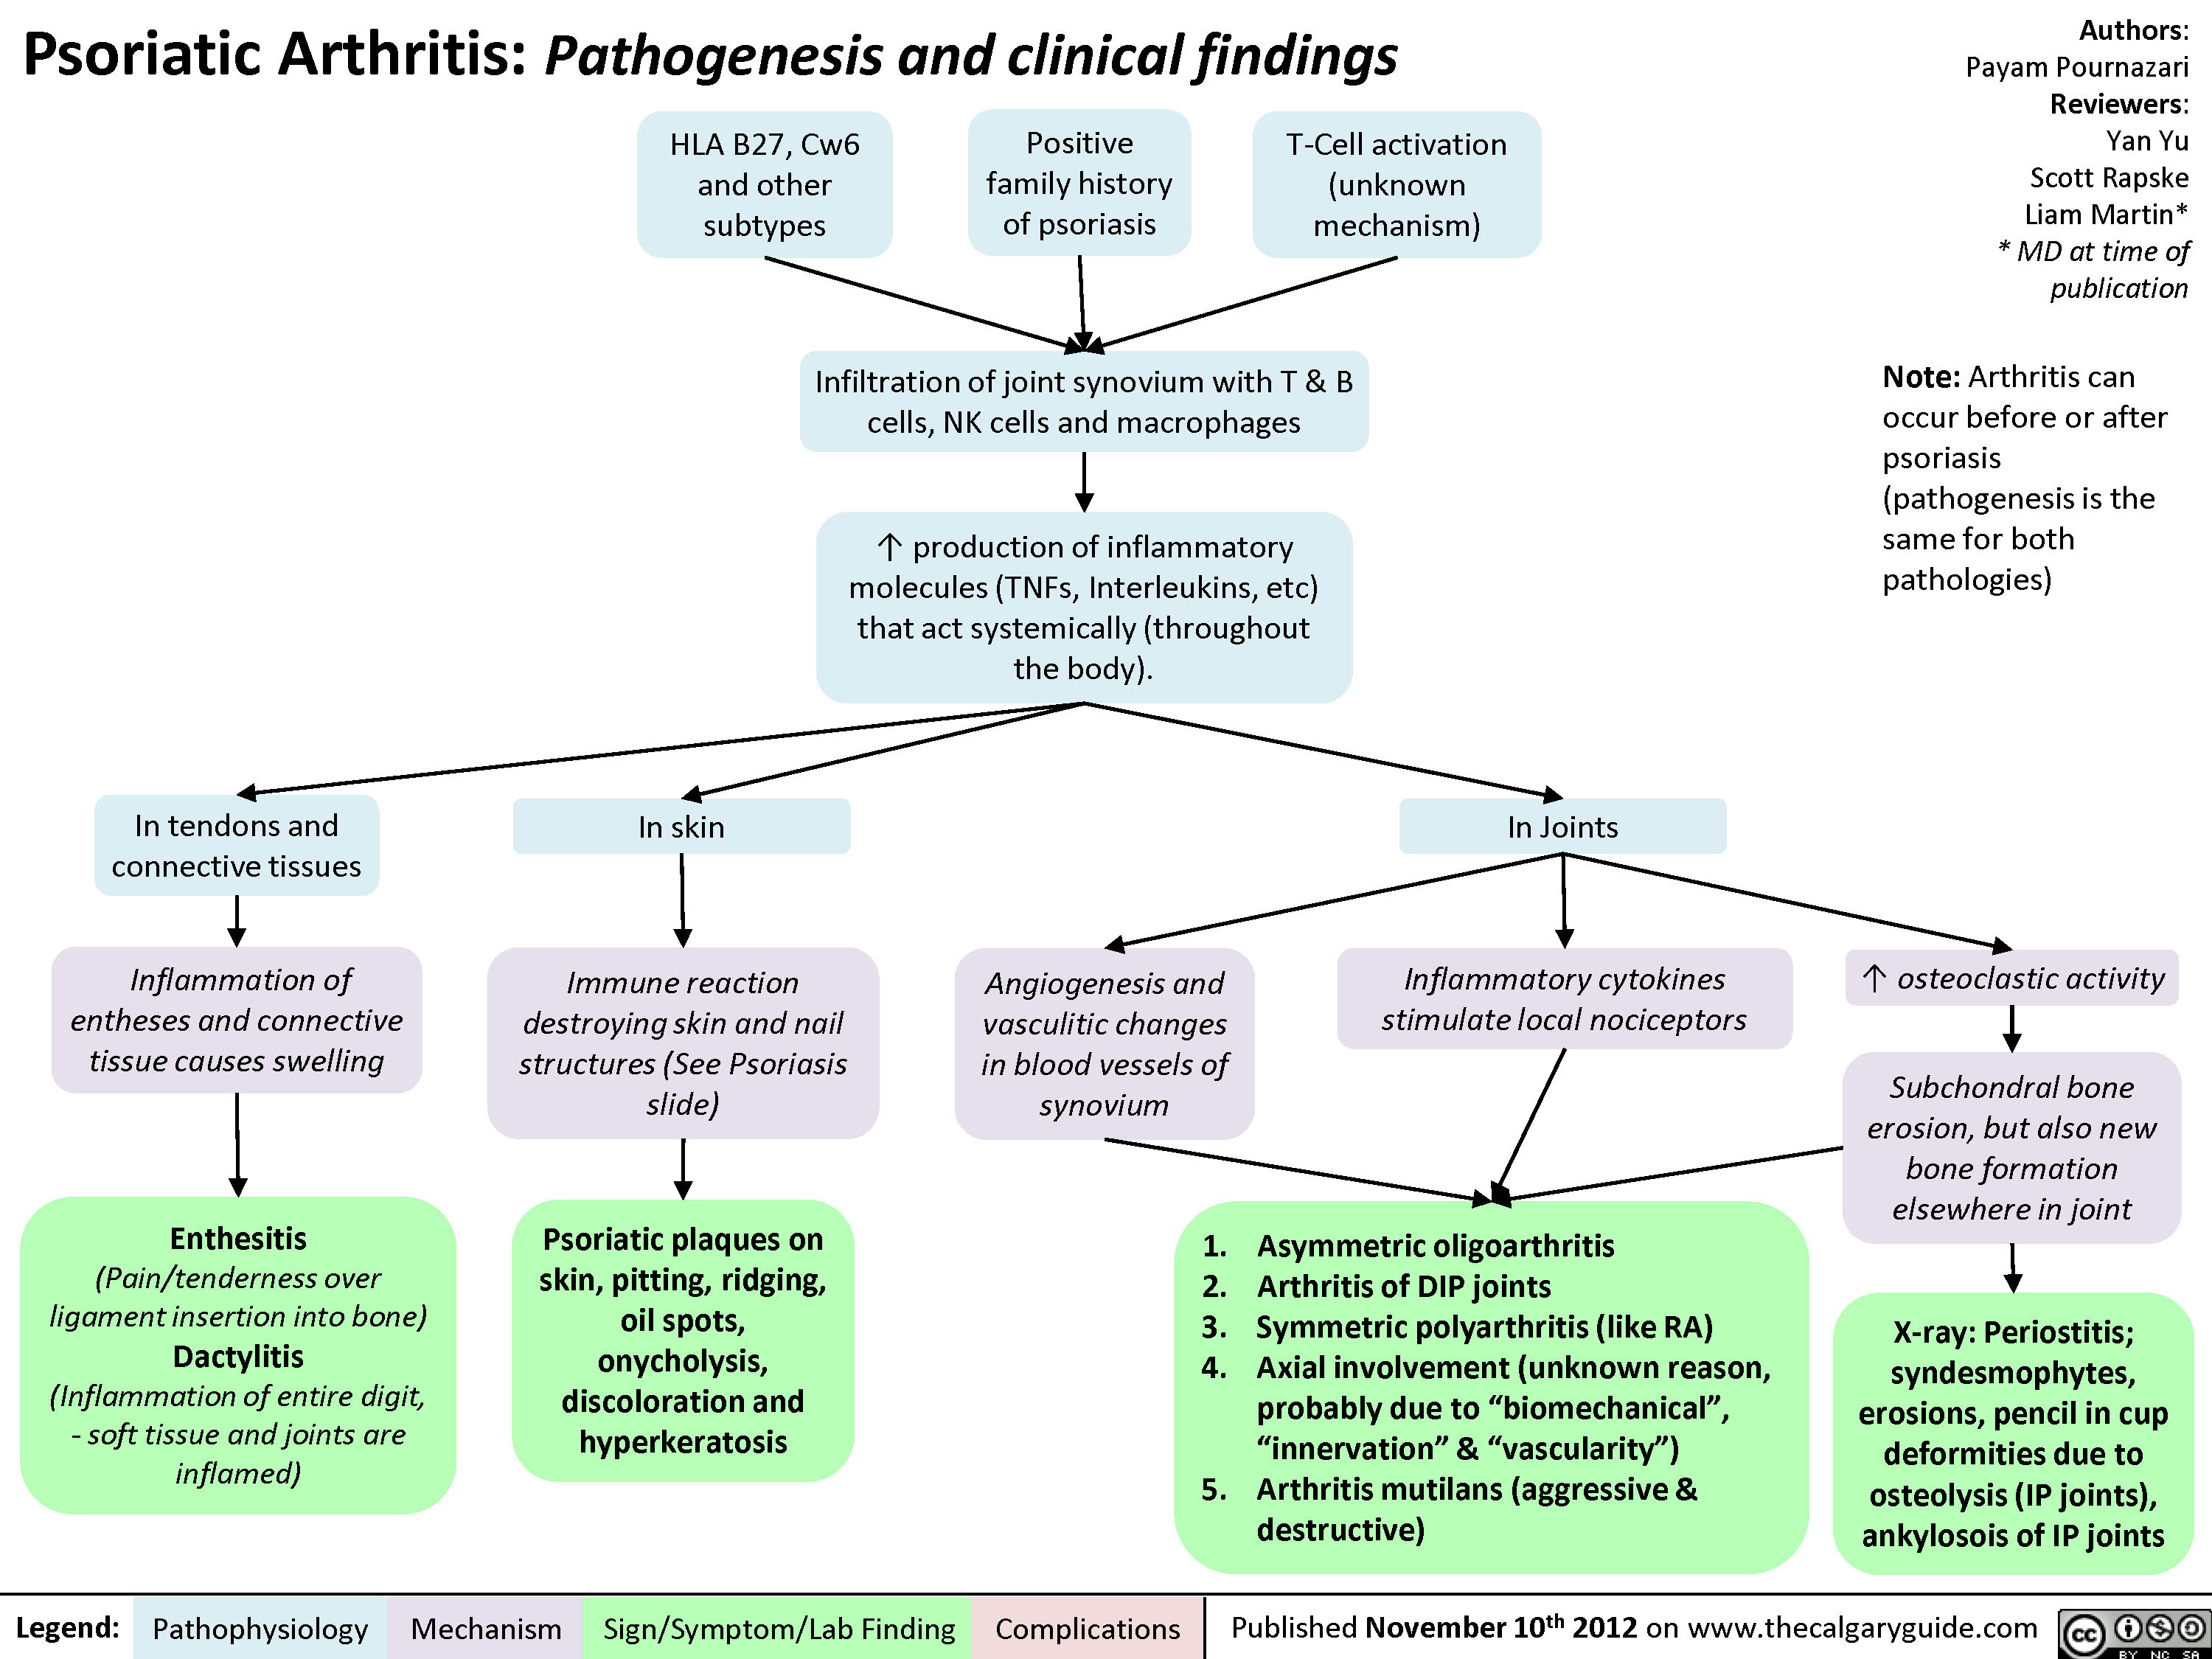 Psoriatic Arthritis - Pathogenesis and Clinical findings